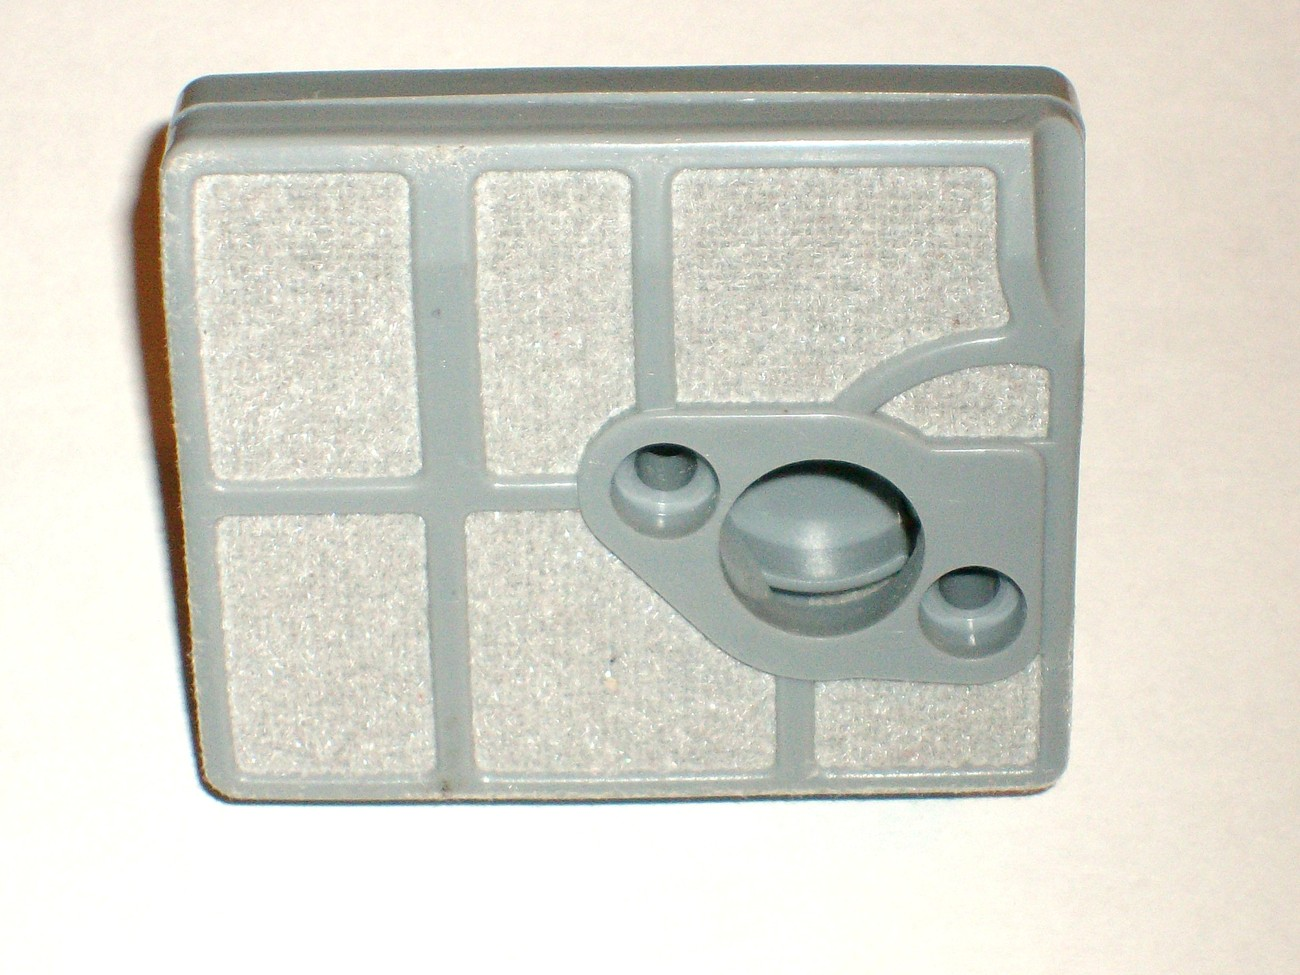 Air Filter fits Stihl 031 and 032, 11131201602, 11131201603, 11131201612